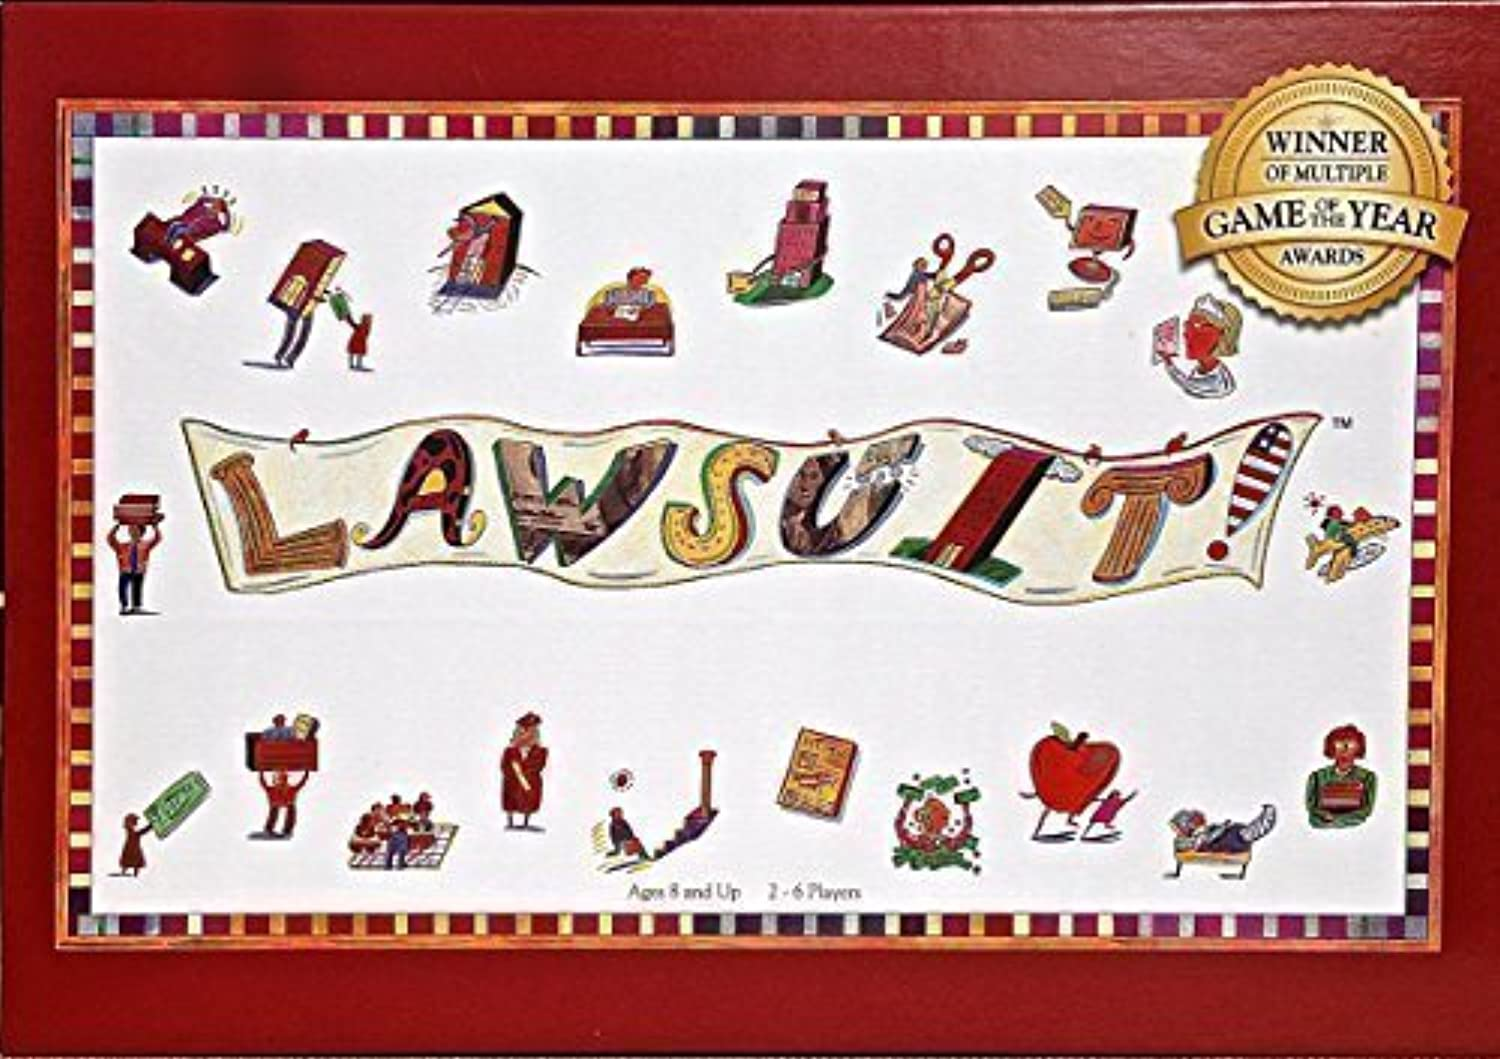 LAWSUIT--A Fun Family Award-Winning Board Game by  Professional Games, Inc.